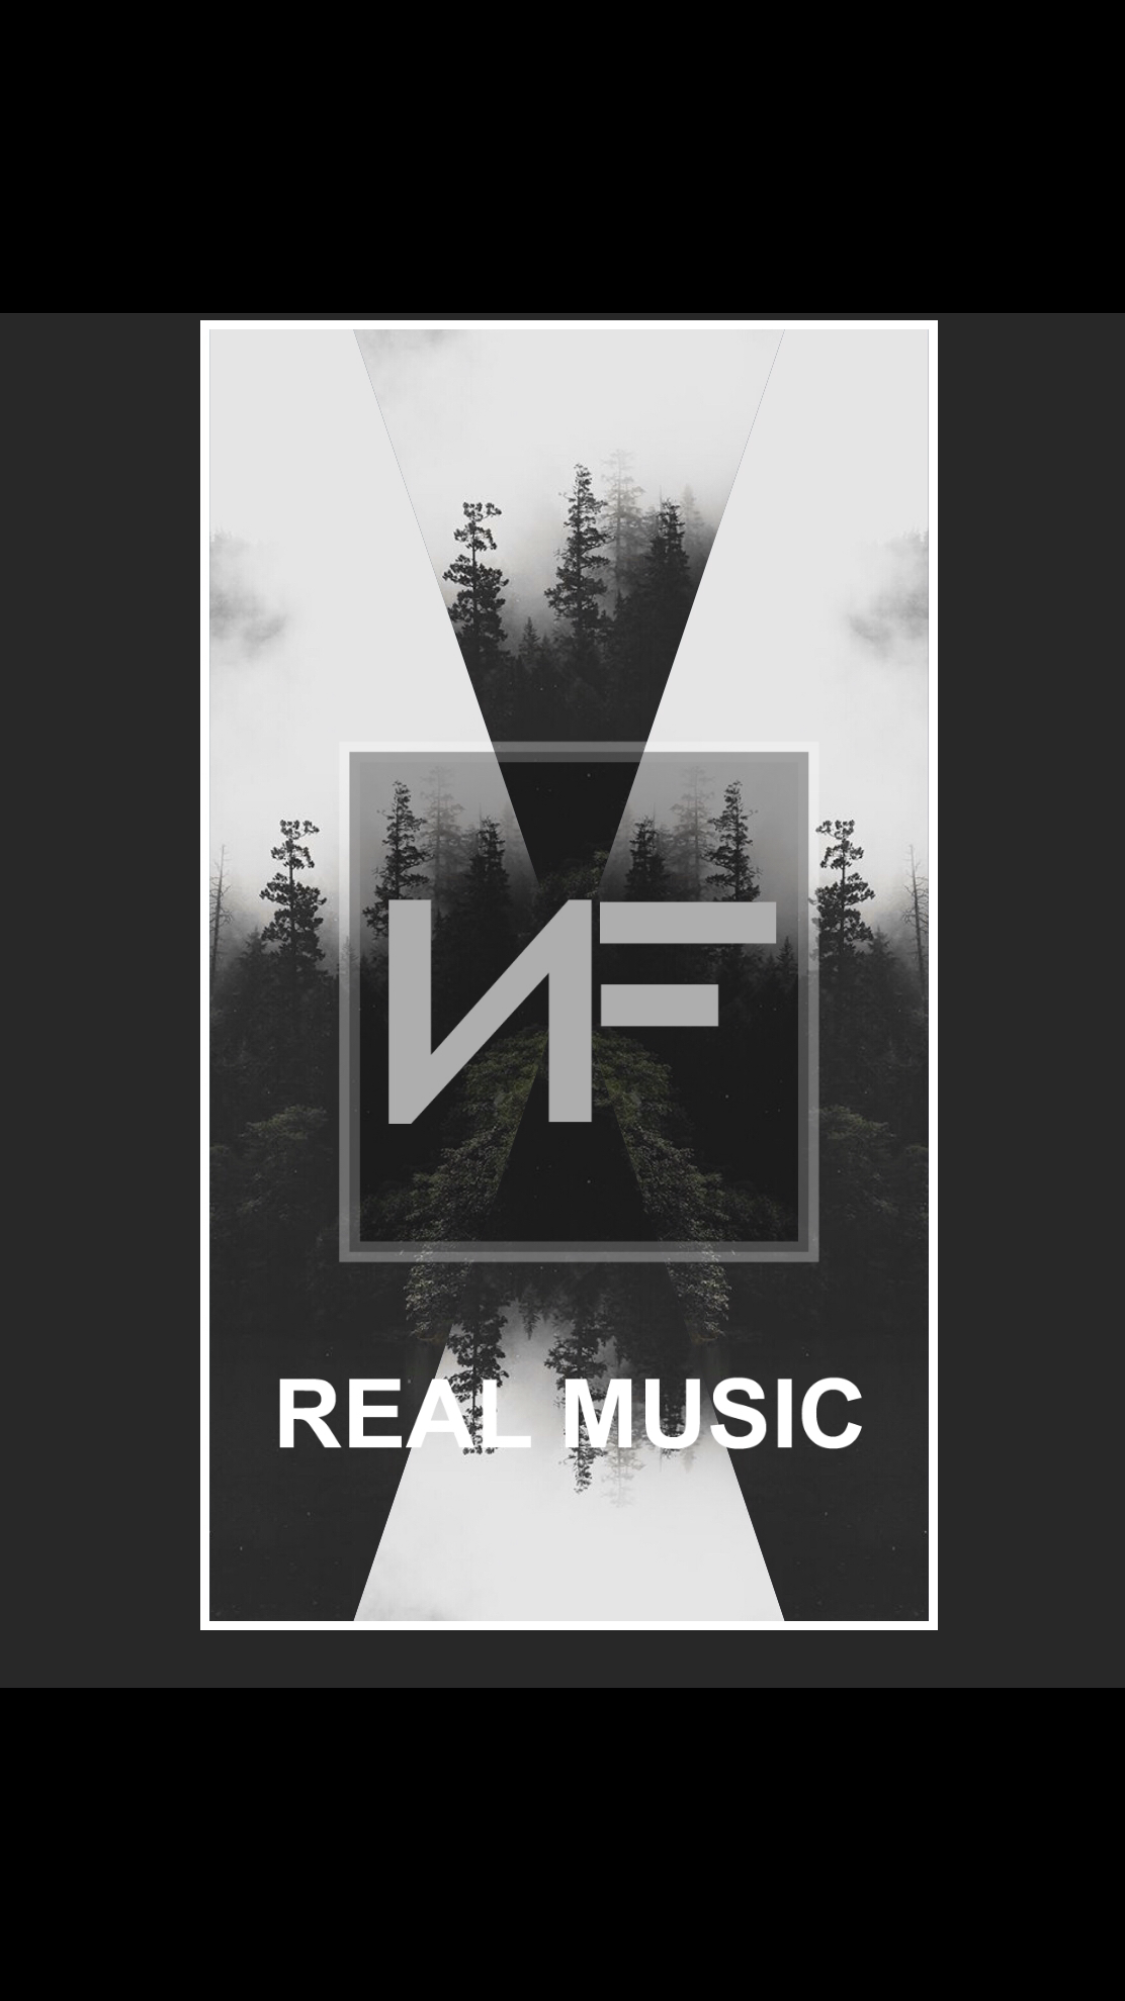 realmusic NF Nf real music, Nf real, Pretty wallpapers